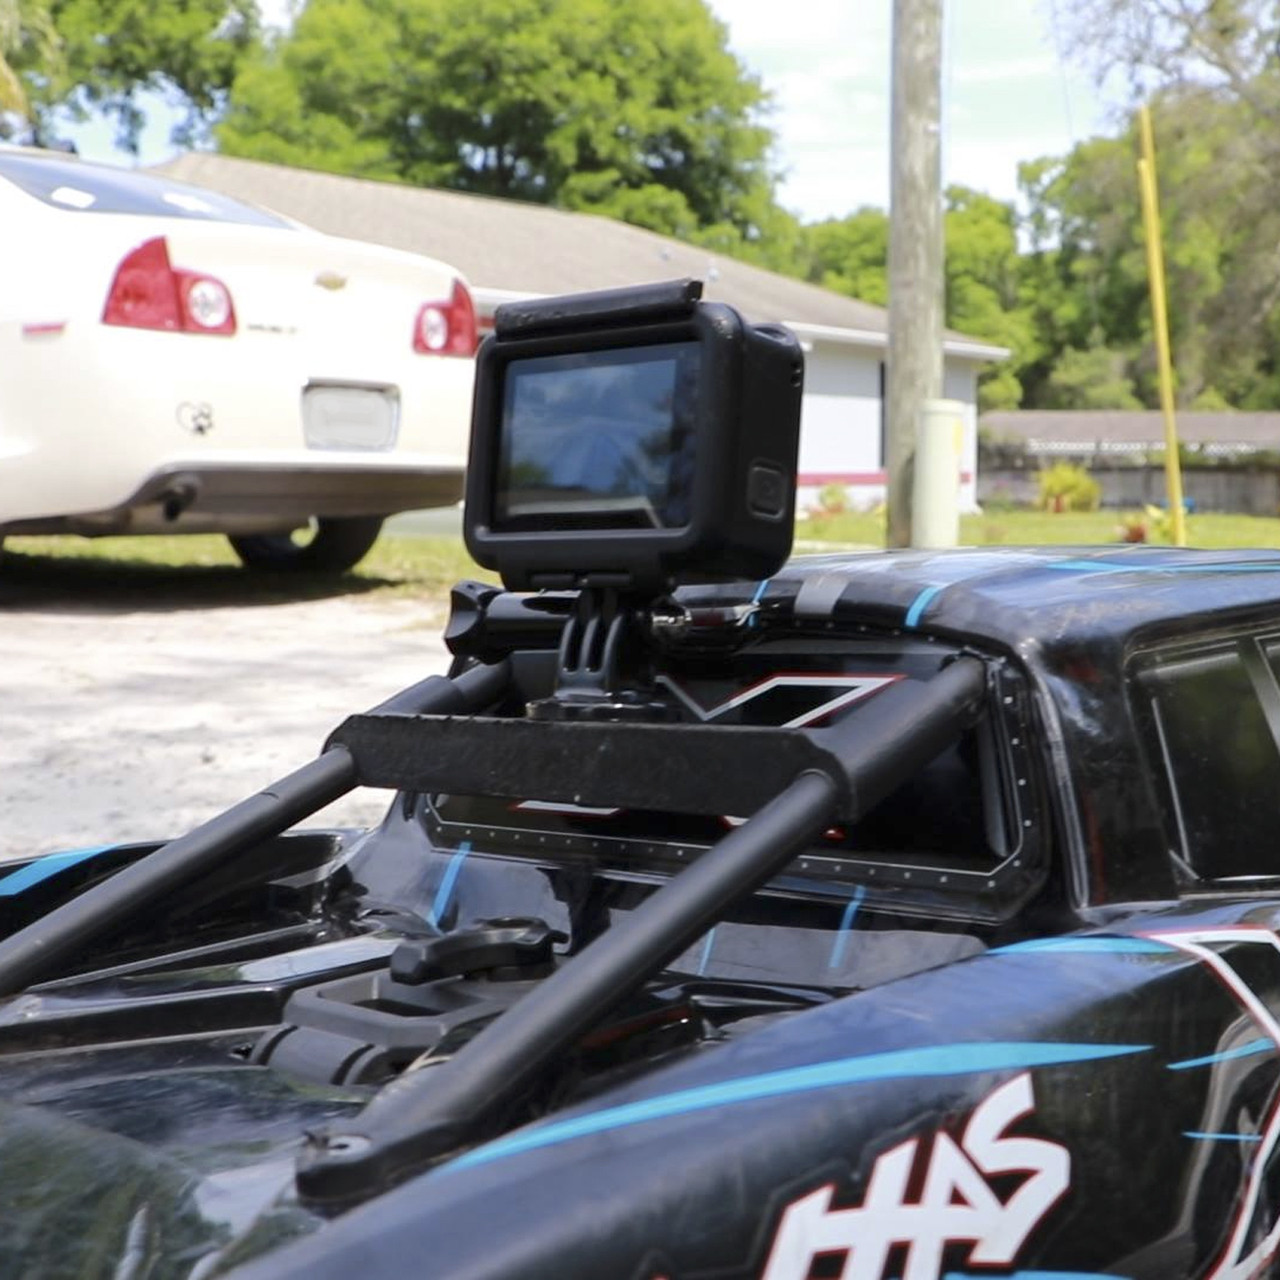 GoPro Hero 7 mounted on the X-MAXX and ready to roll.